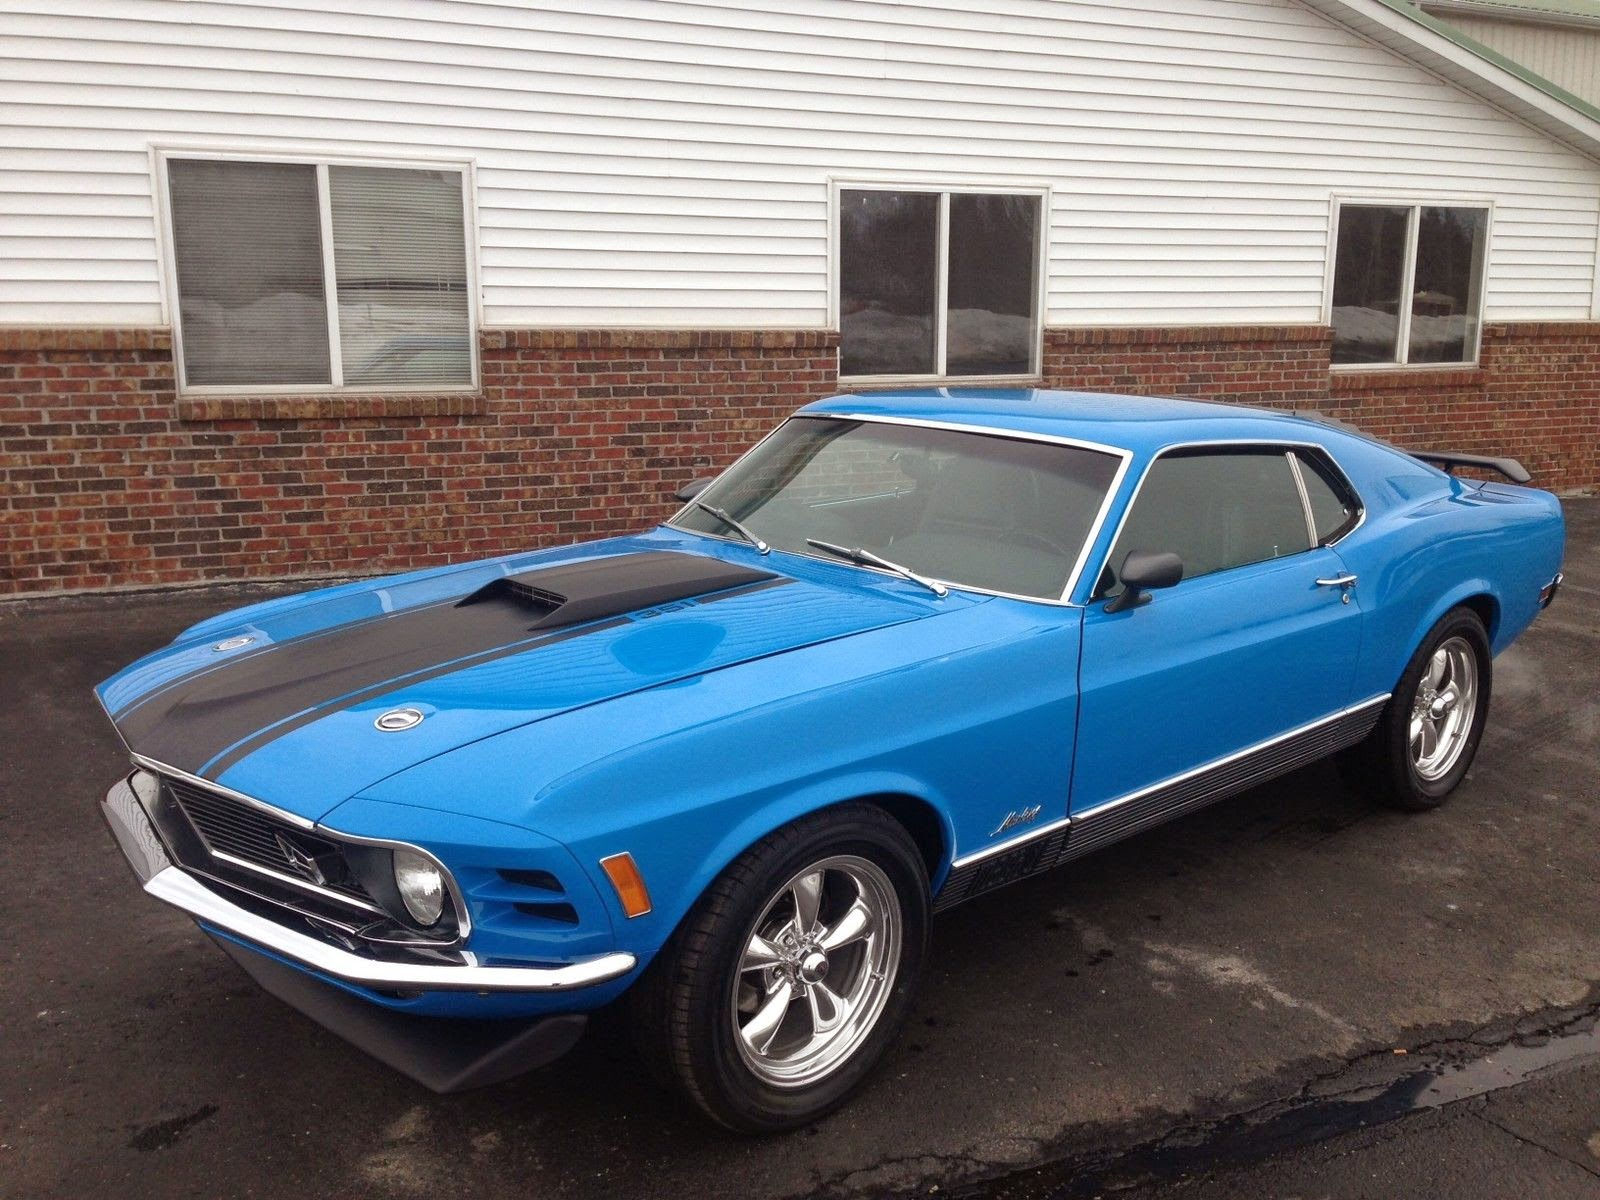 1970 Mustang Mach 1 Rotisserie Restoration ~ For Sale American ...